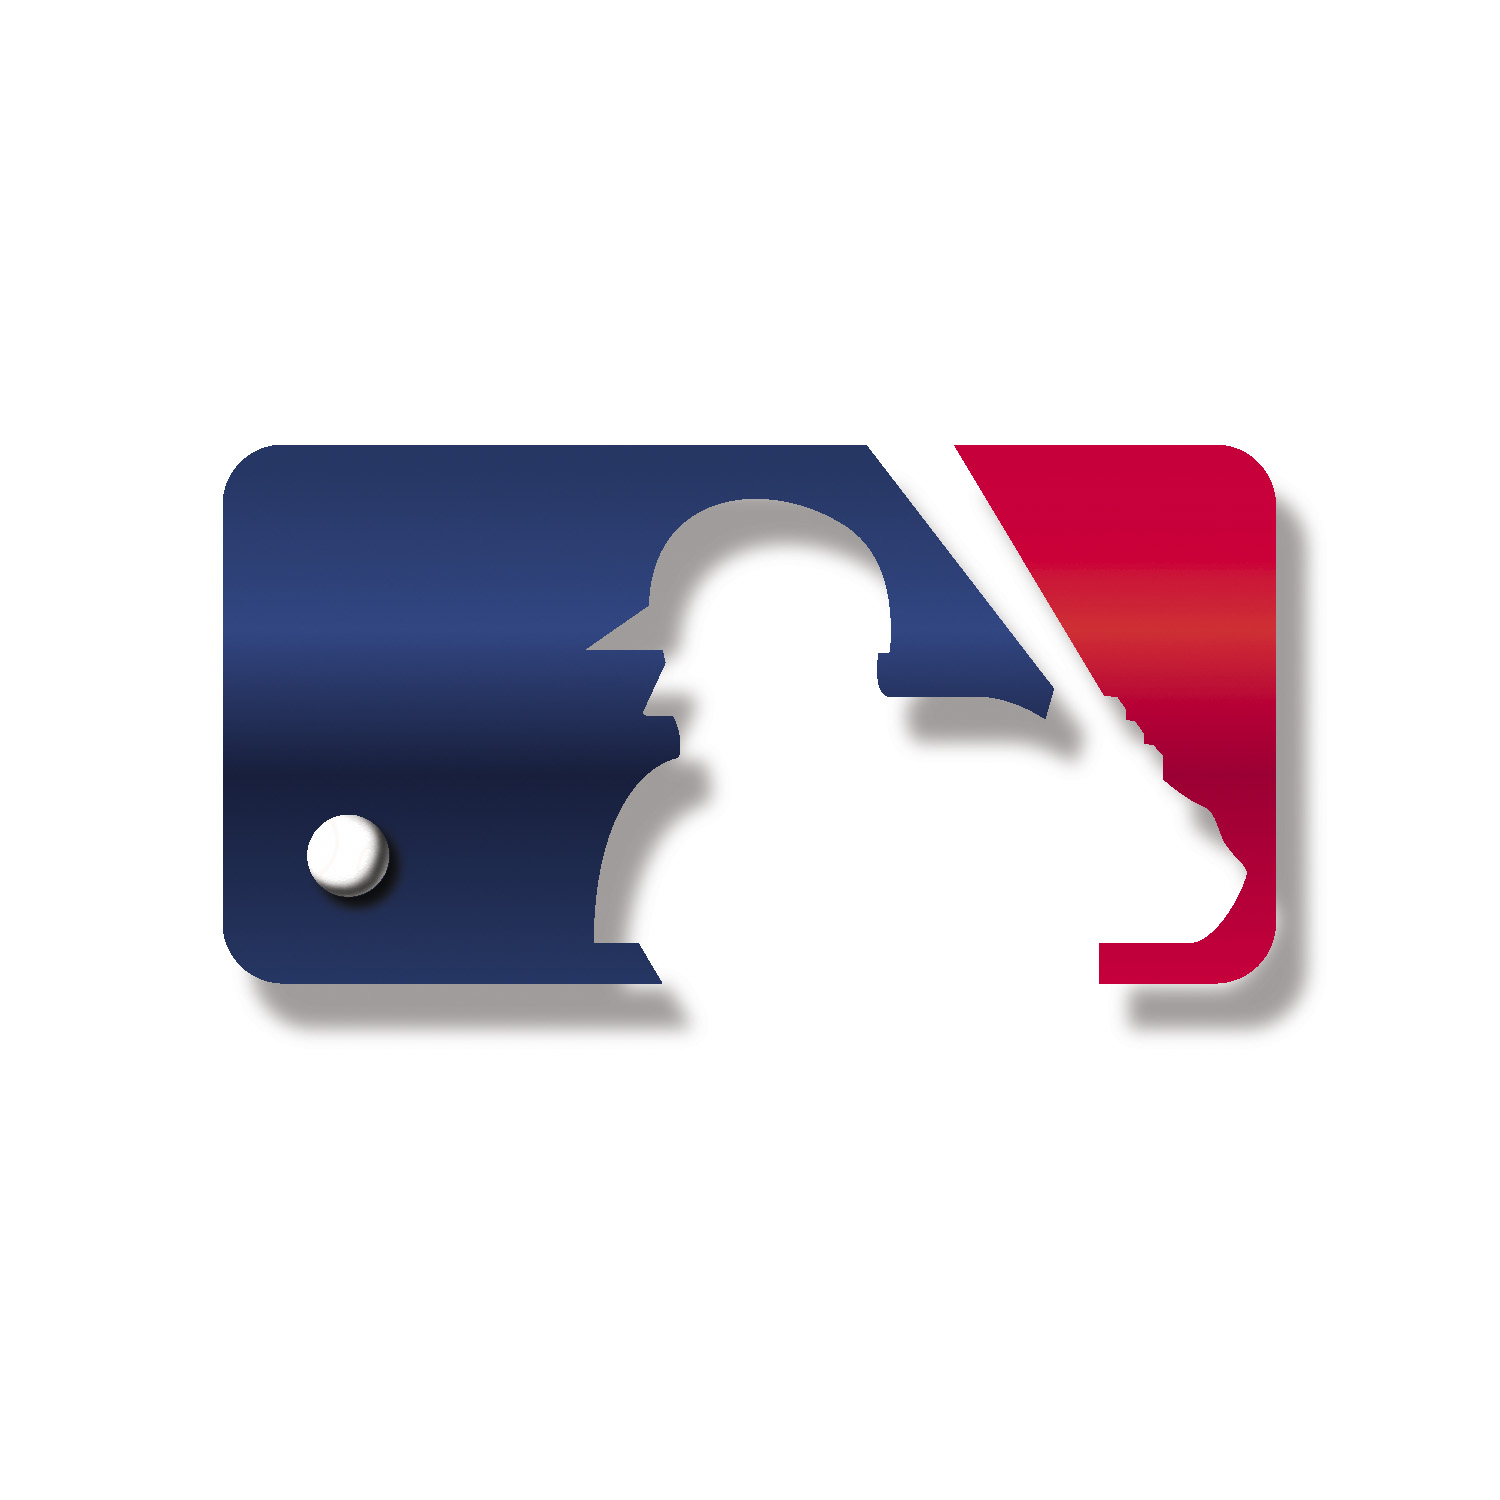 MLB-3-D-Logo-courtesy-of-MLBpressbox.com_